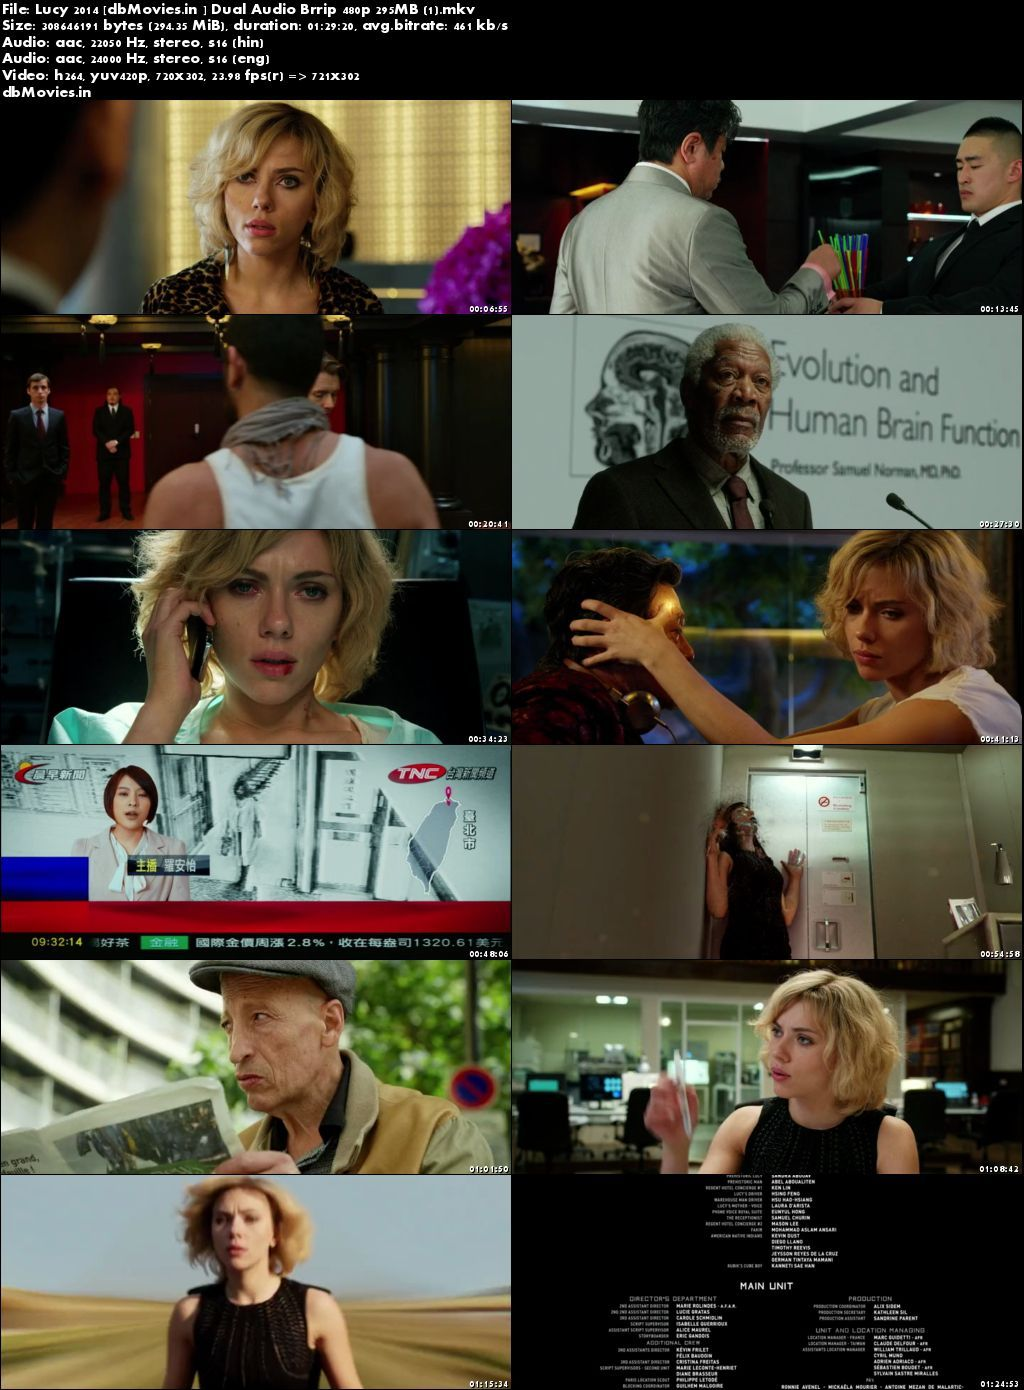 Screen Shot Lucy 2014 Full Movie Download 300MB Dual Audio Hindi Dubbed